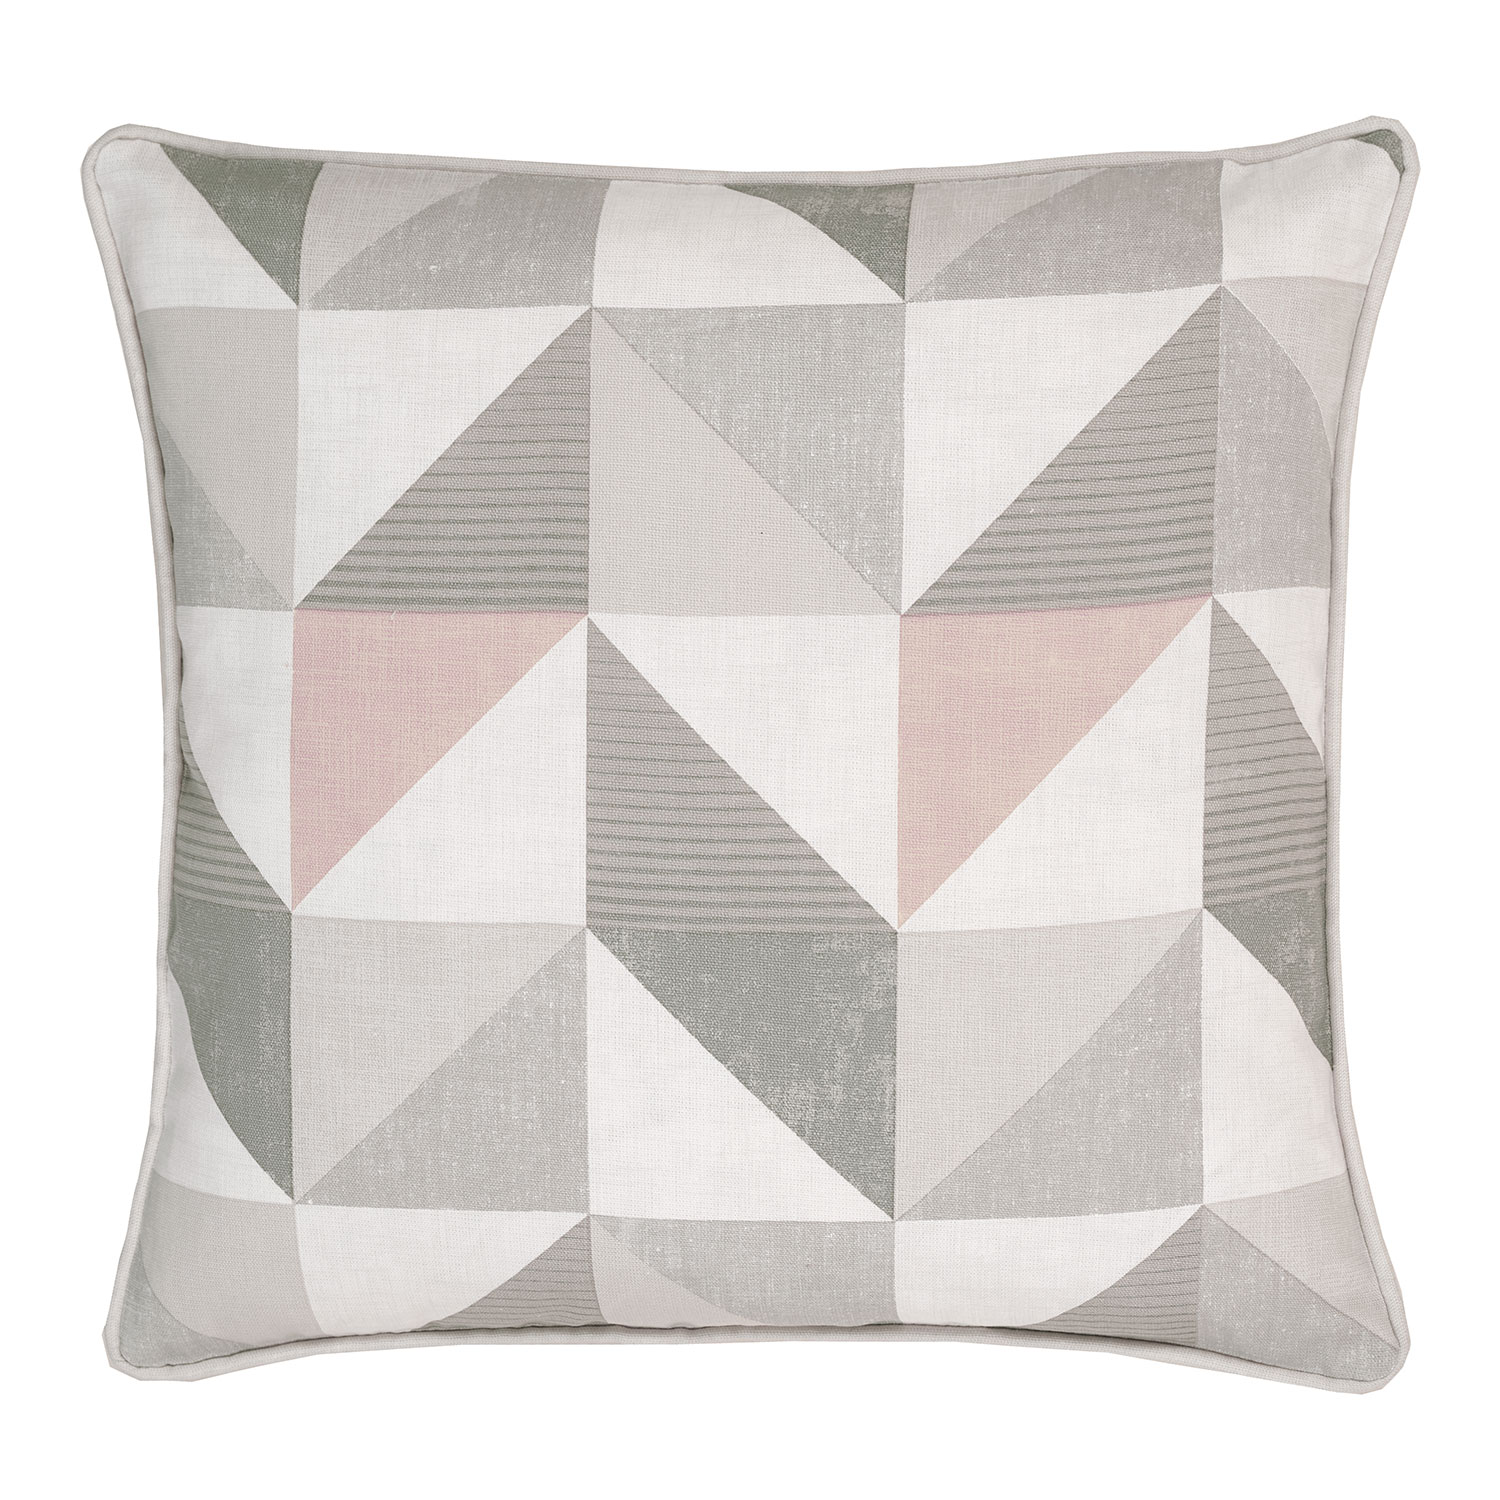 Bargain Delta Mauve Luxury Filled Square Cushion Stockists